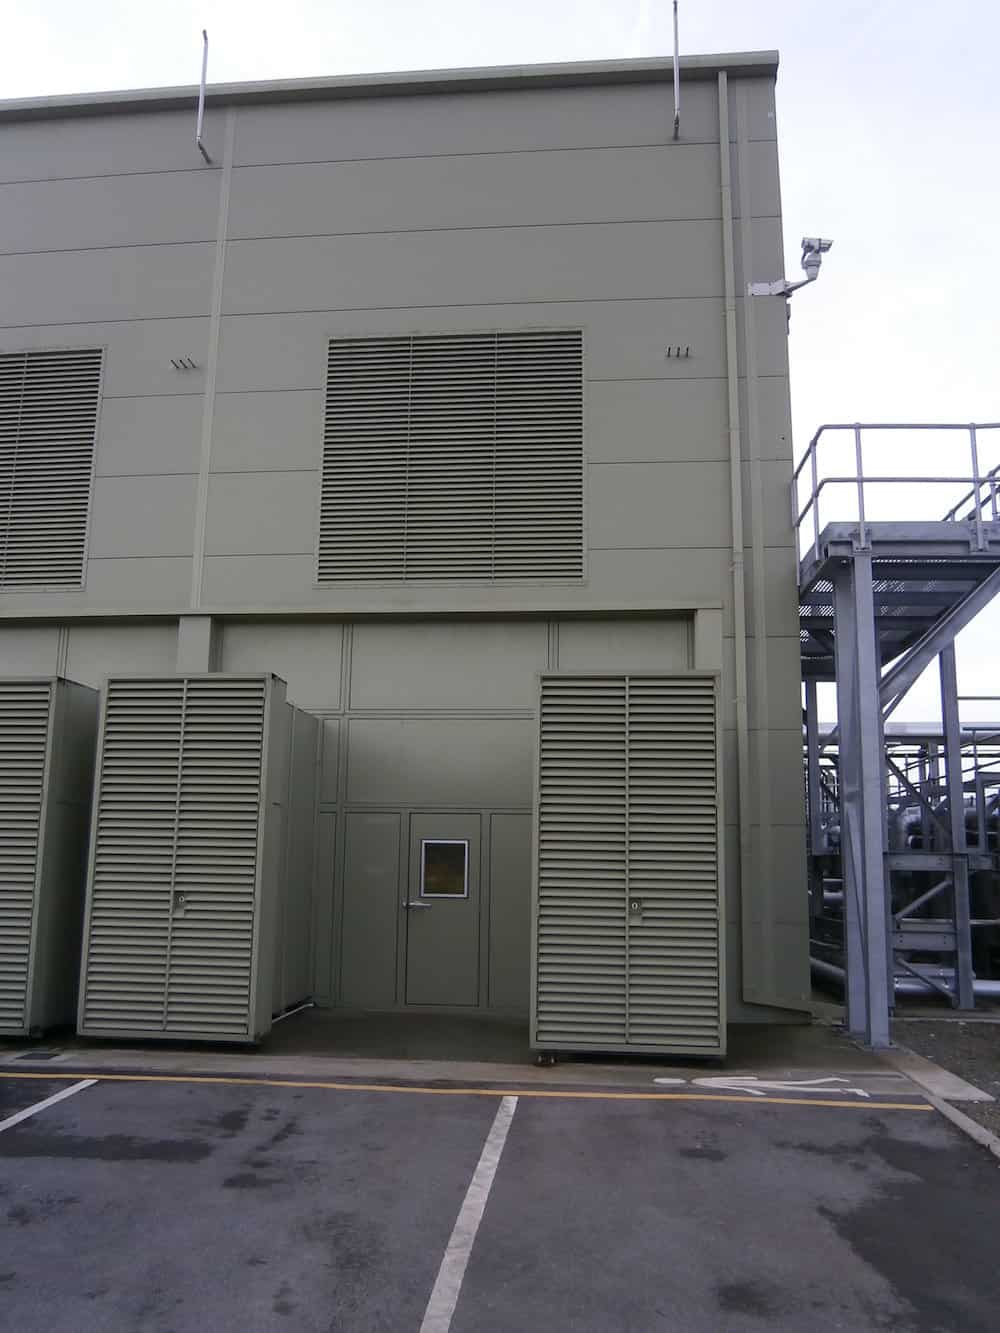 Detailed image of Davyhulme Waste Water treatment Works Acoustic Enclosure for Clarke Energy